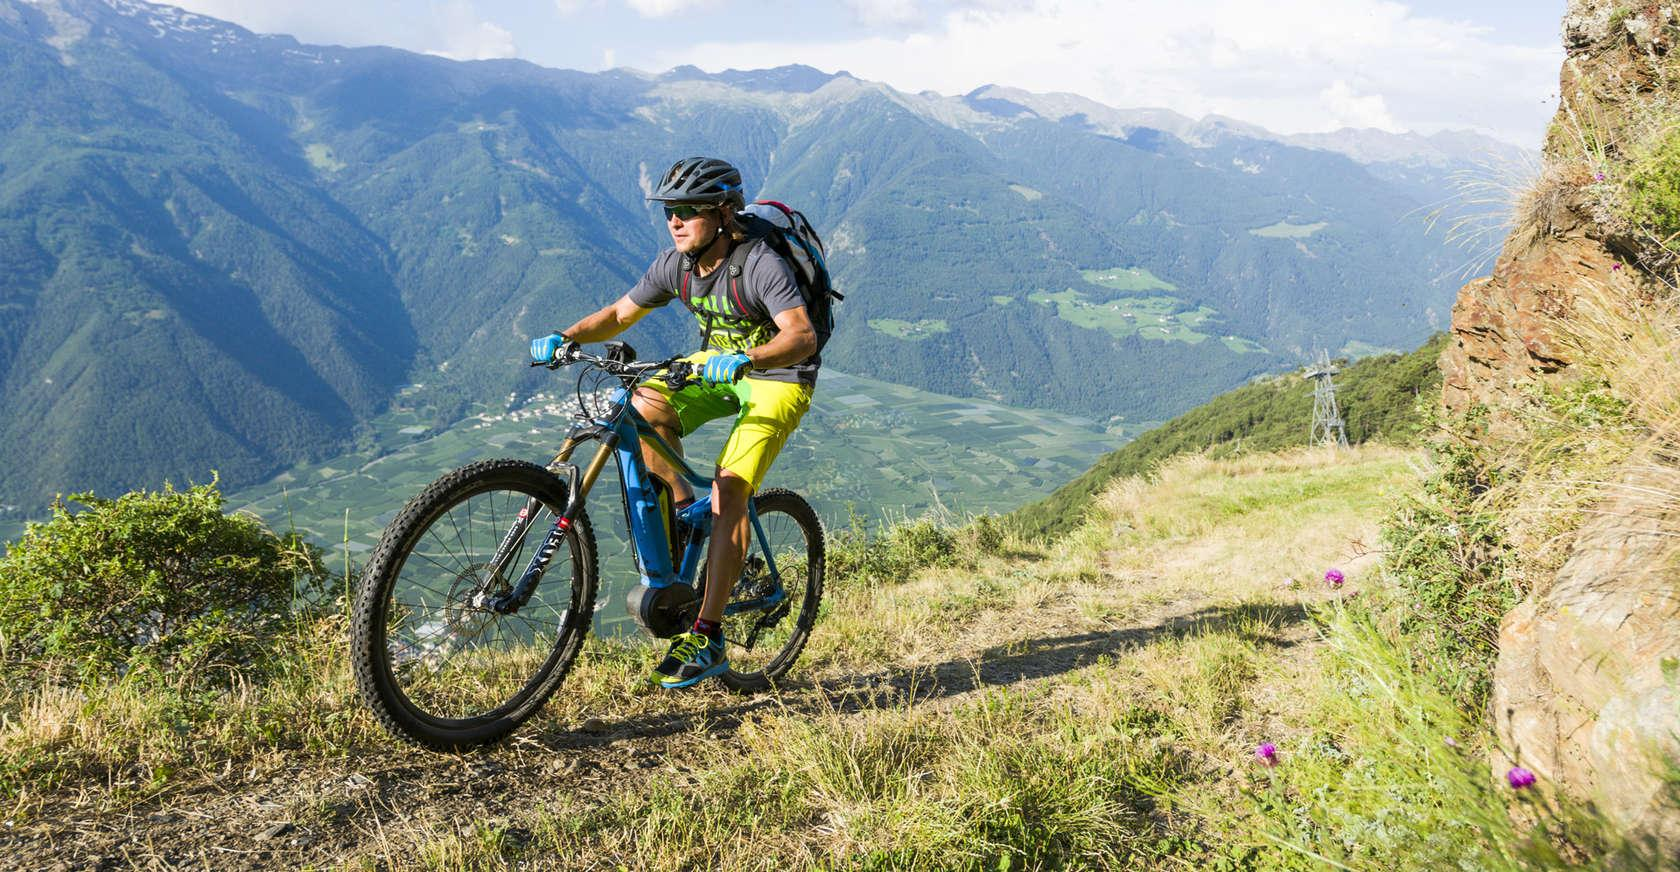 E-Mountainbike – Faszination Technik